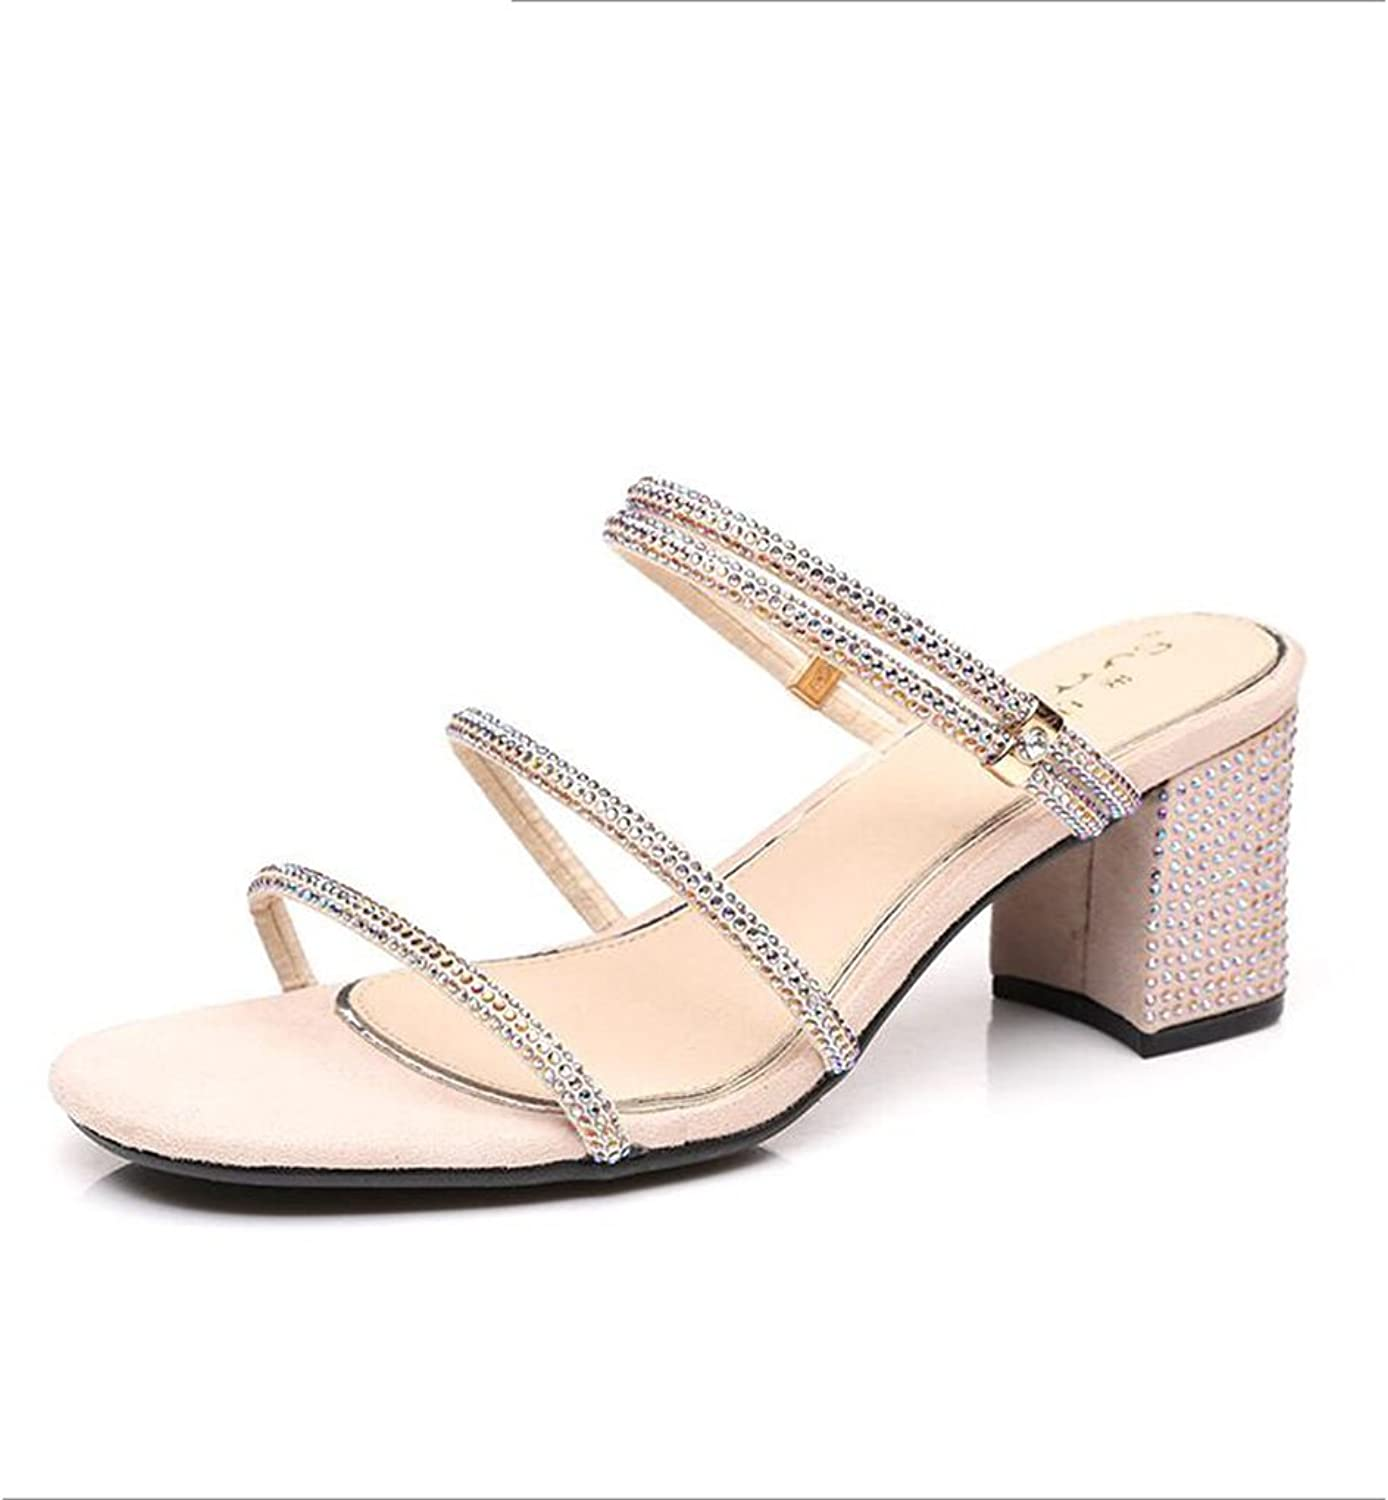 Jinsen Summer Women's Sandals Two Wear Diamonds Buckle Female Coarse with Square Head with Women's shoes